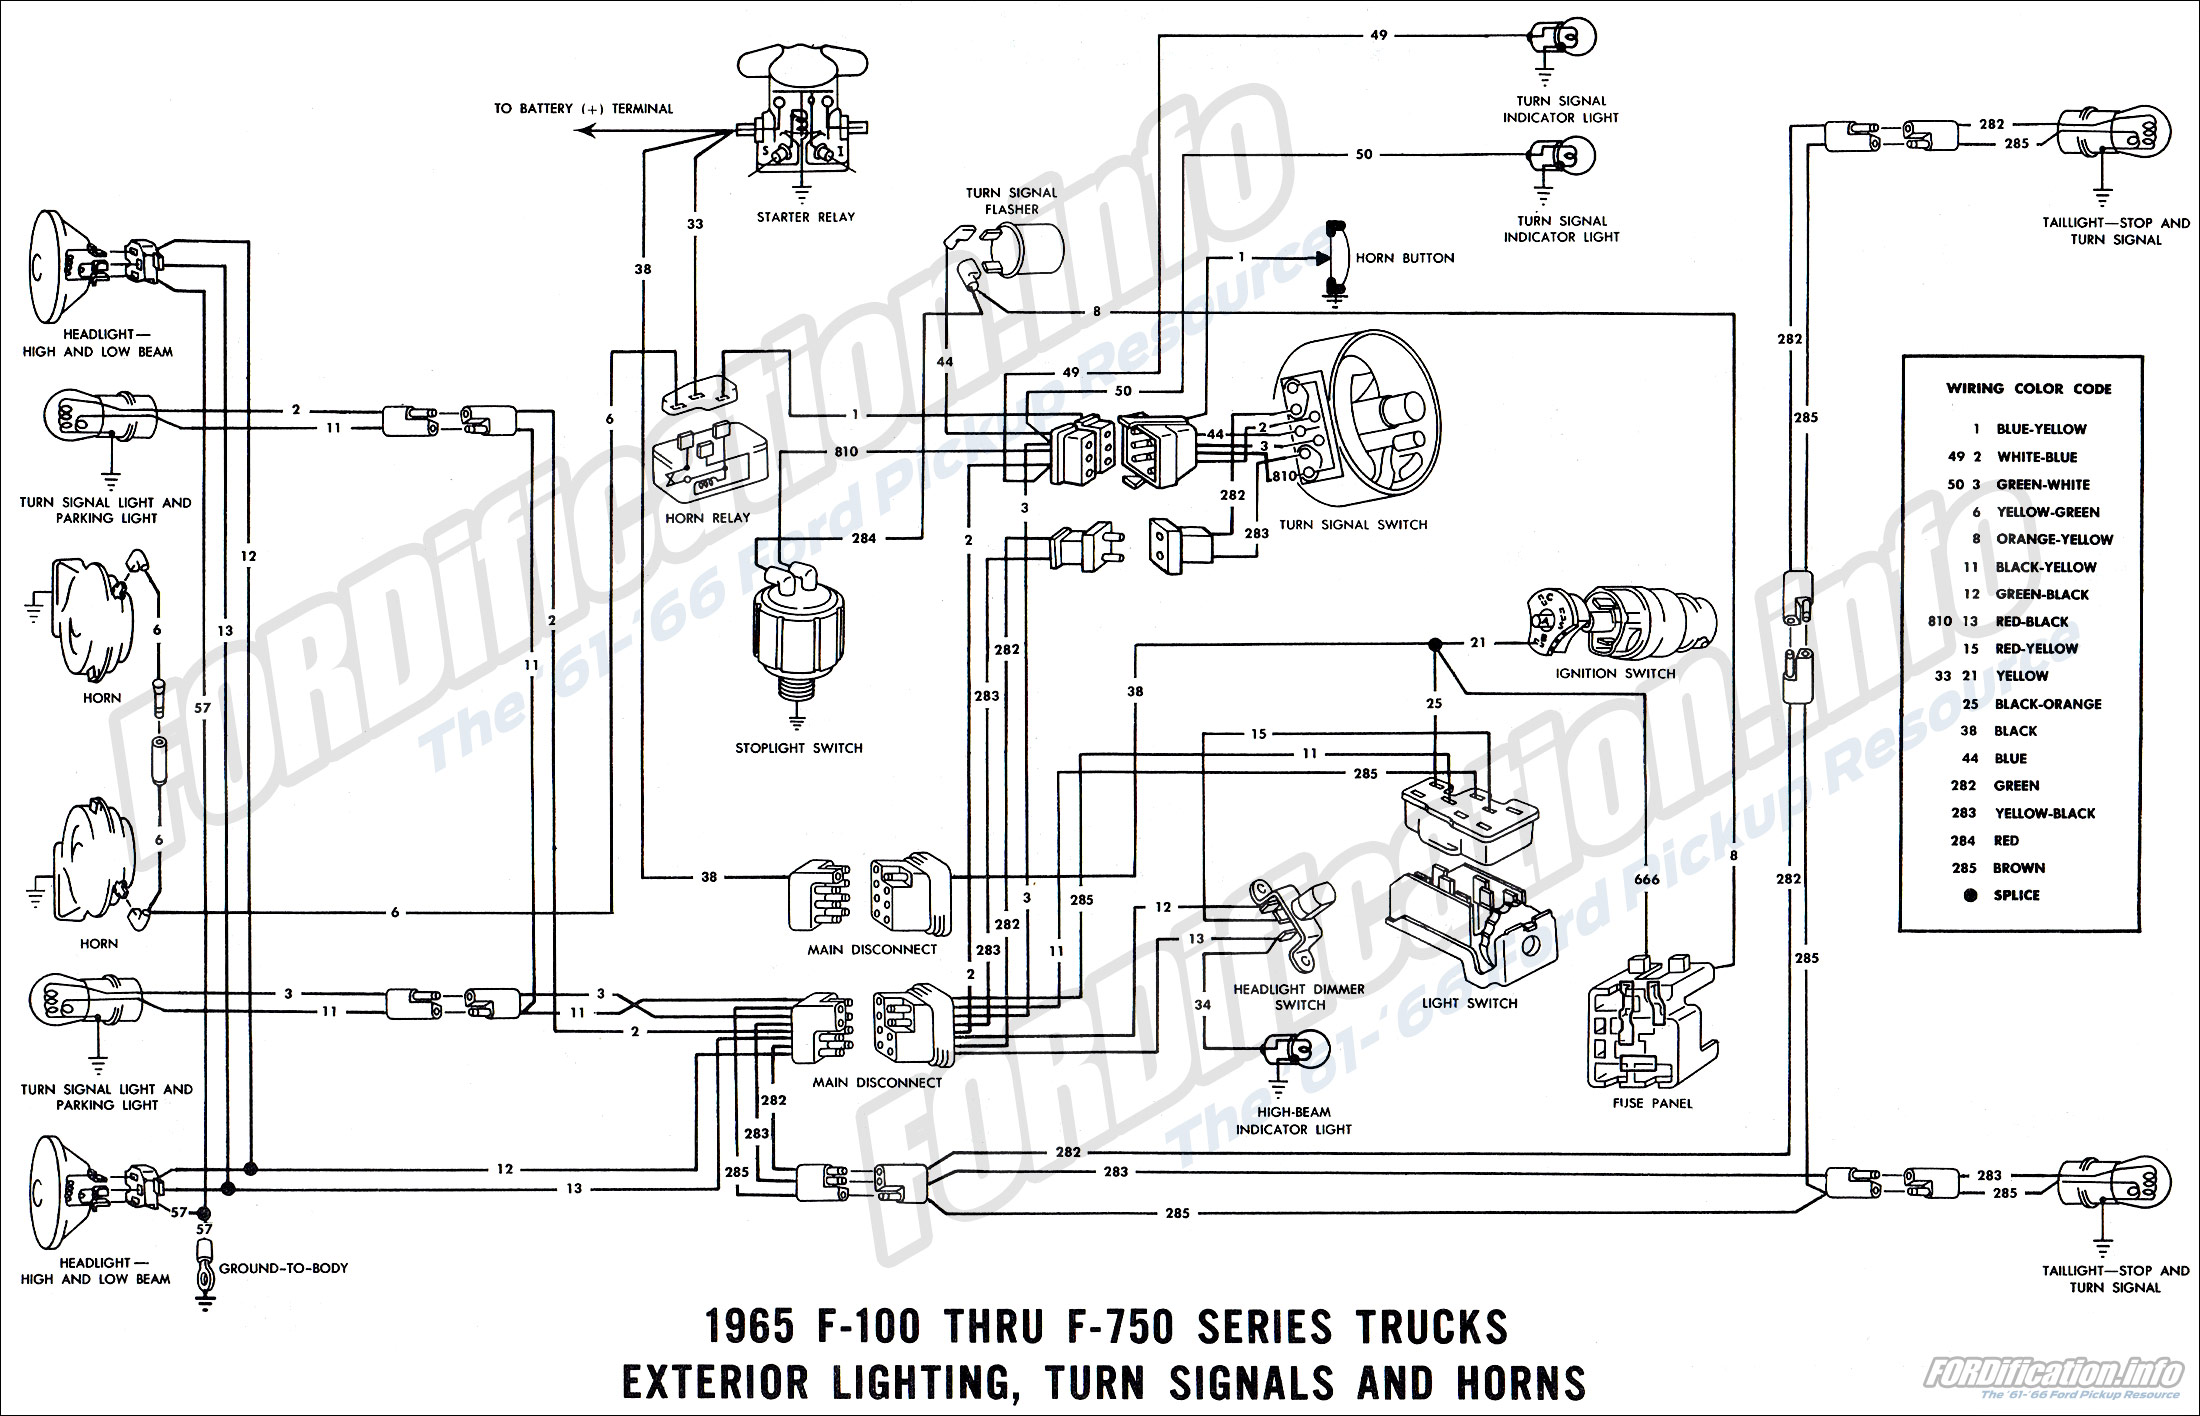 1965 ford truck wiring diagrams fordification info the '61 '66 65 ford f100 suspension 1965 f 100 thru f 750 series trucks exterior lighting, turn signals and horns